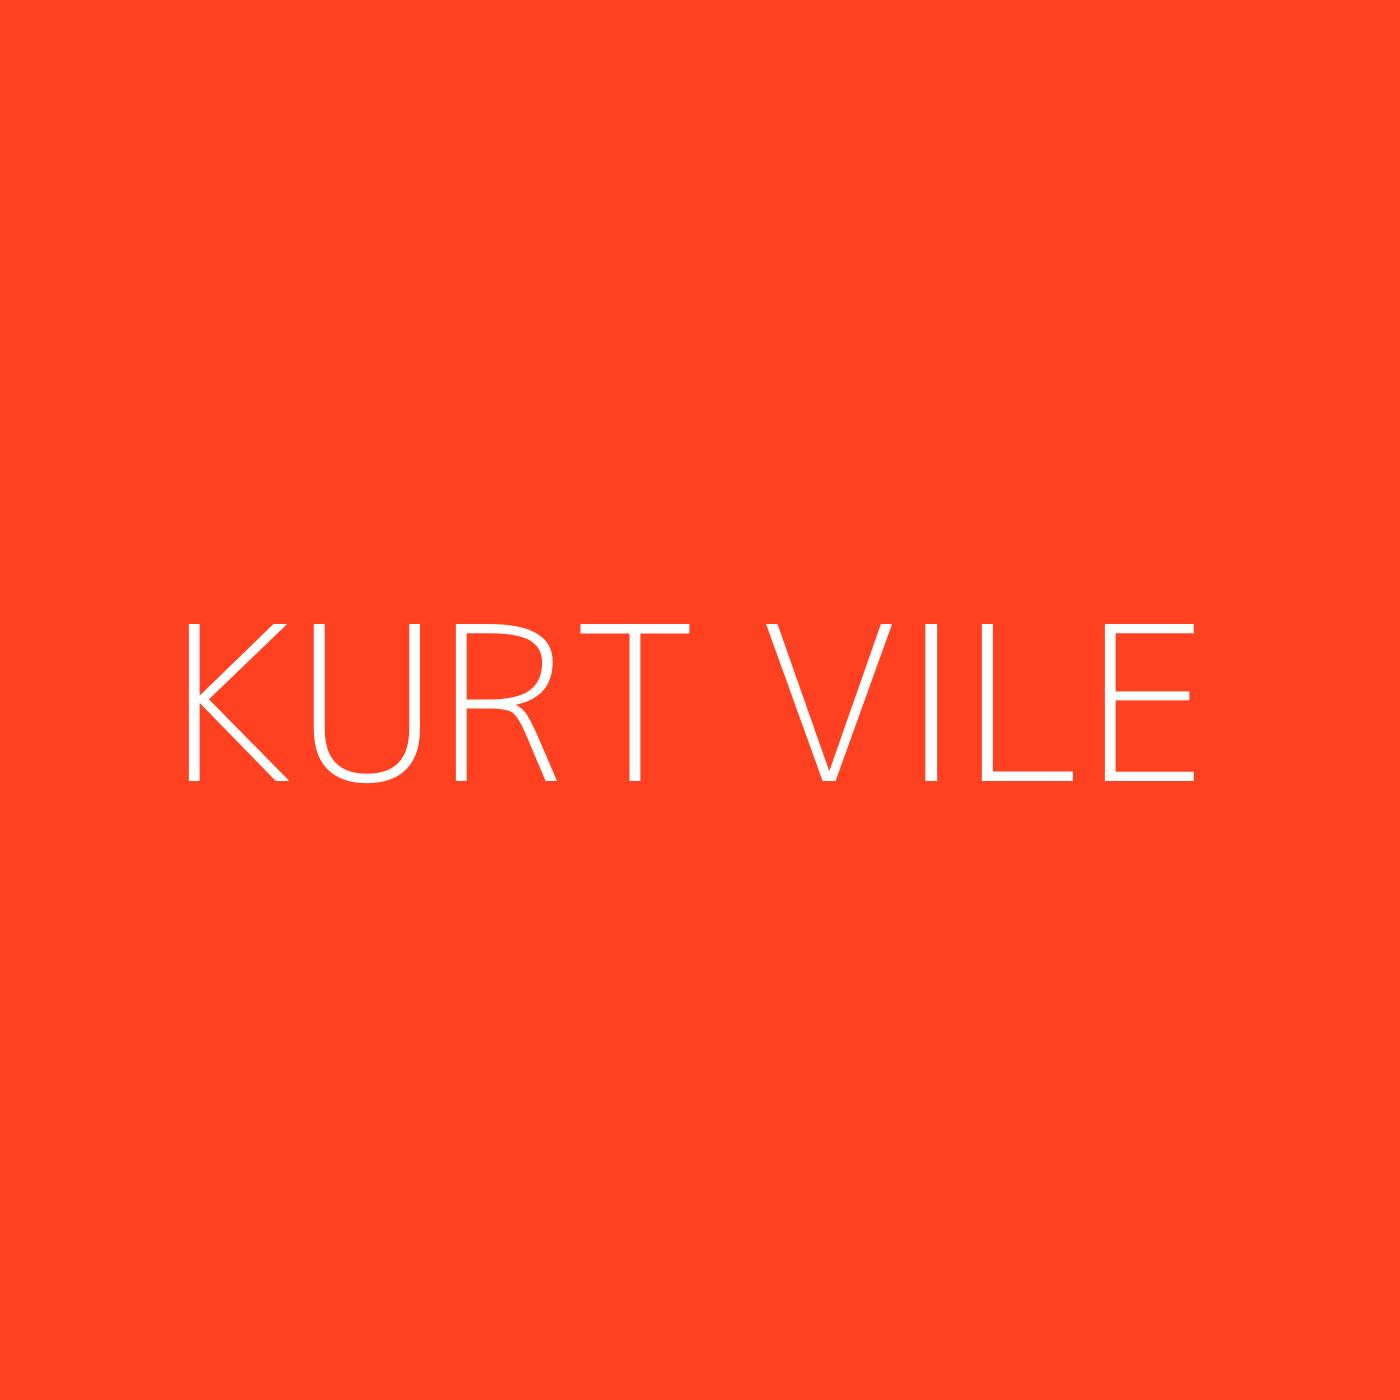 Kurt Vile Playlist Artwork